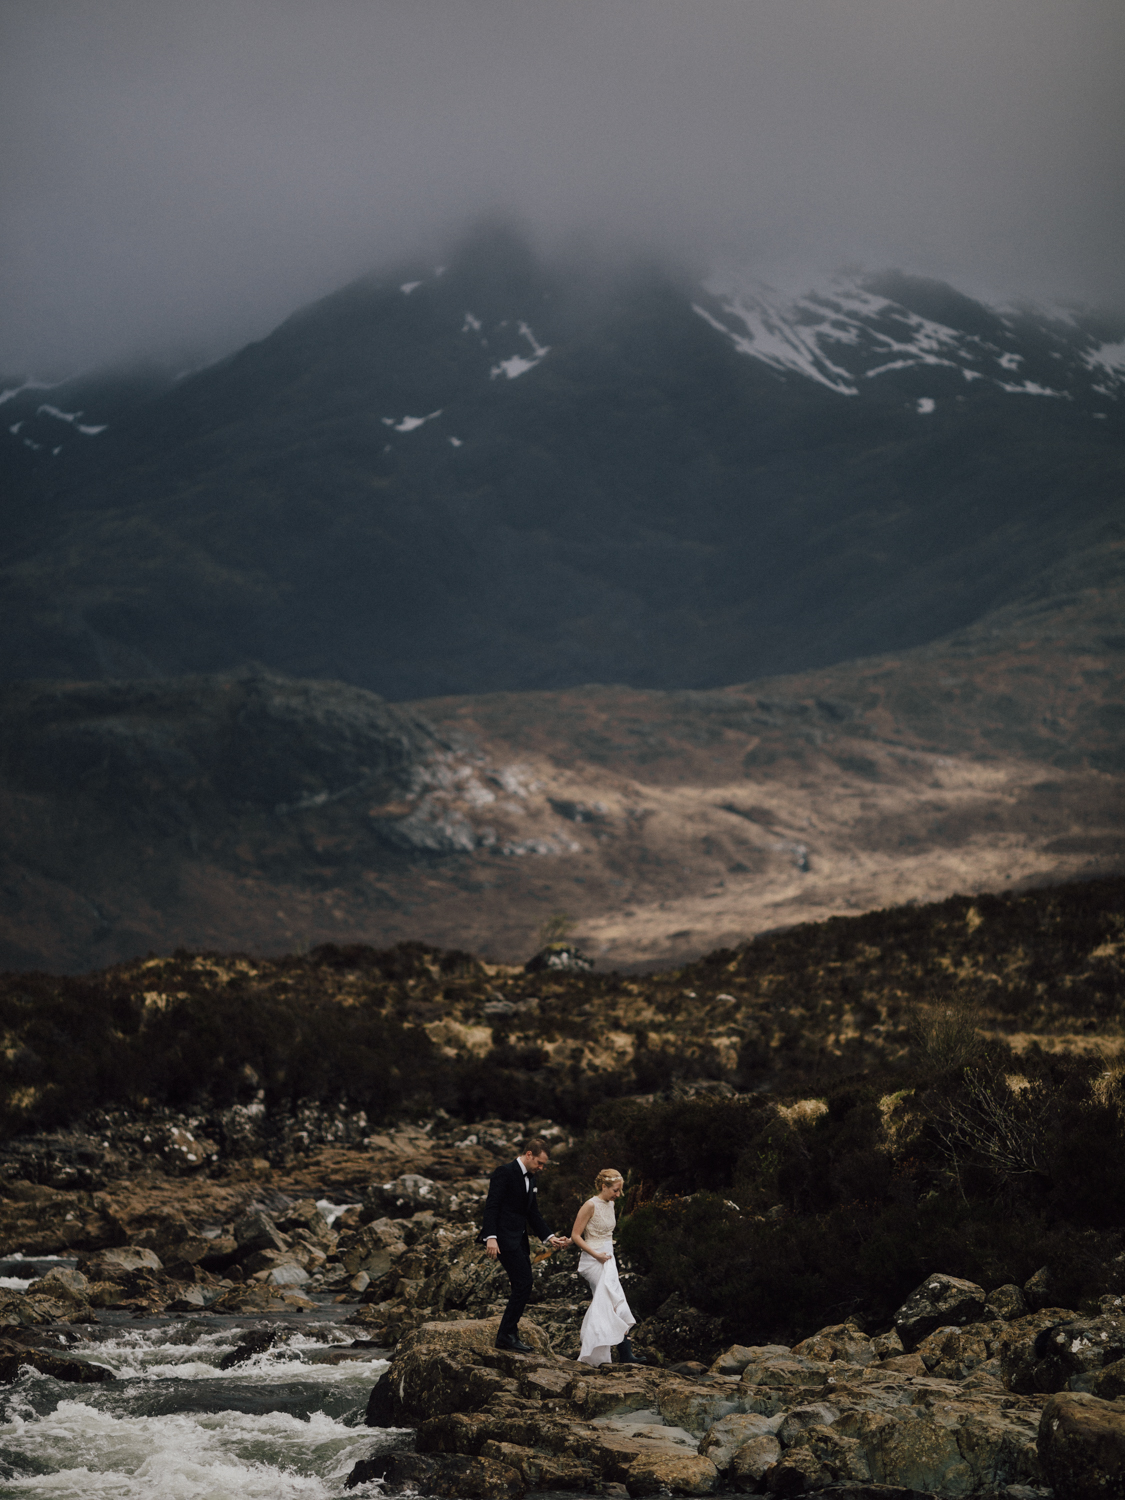 capyture-wedding-photographer-destination-elopement-isle-skye-scotland-389